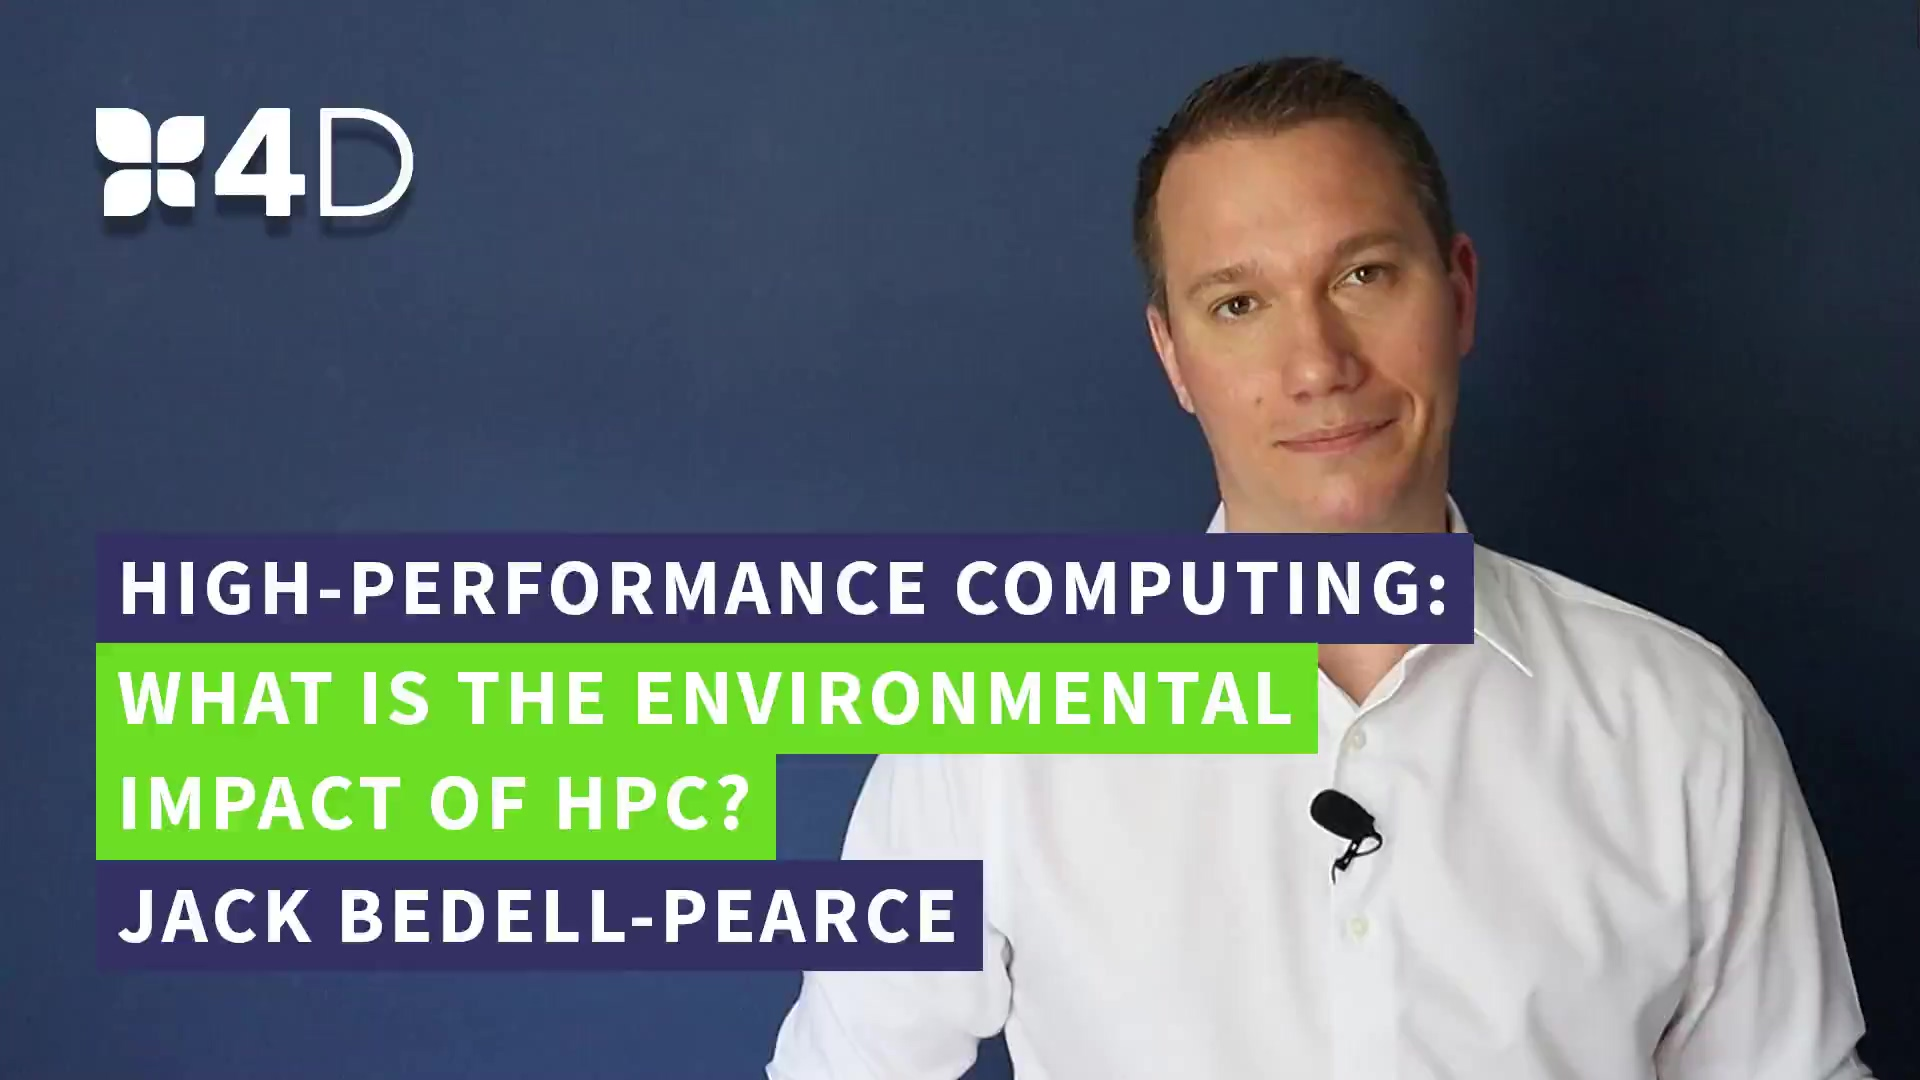 3. 4D - What is the environmental impact of HPC